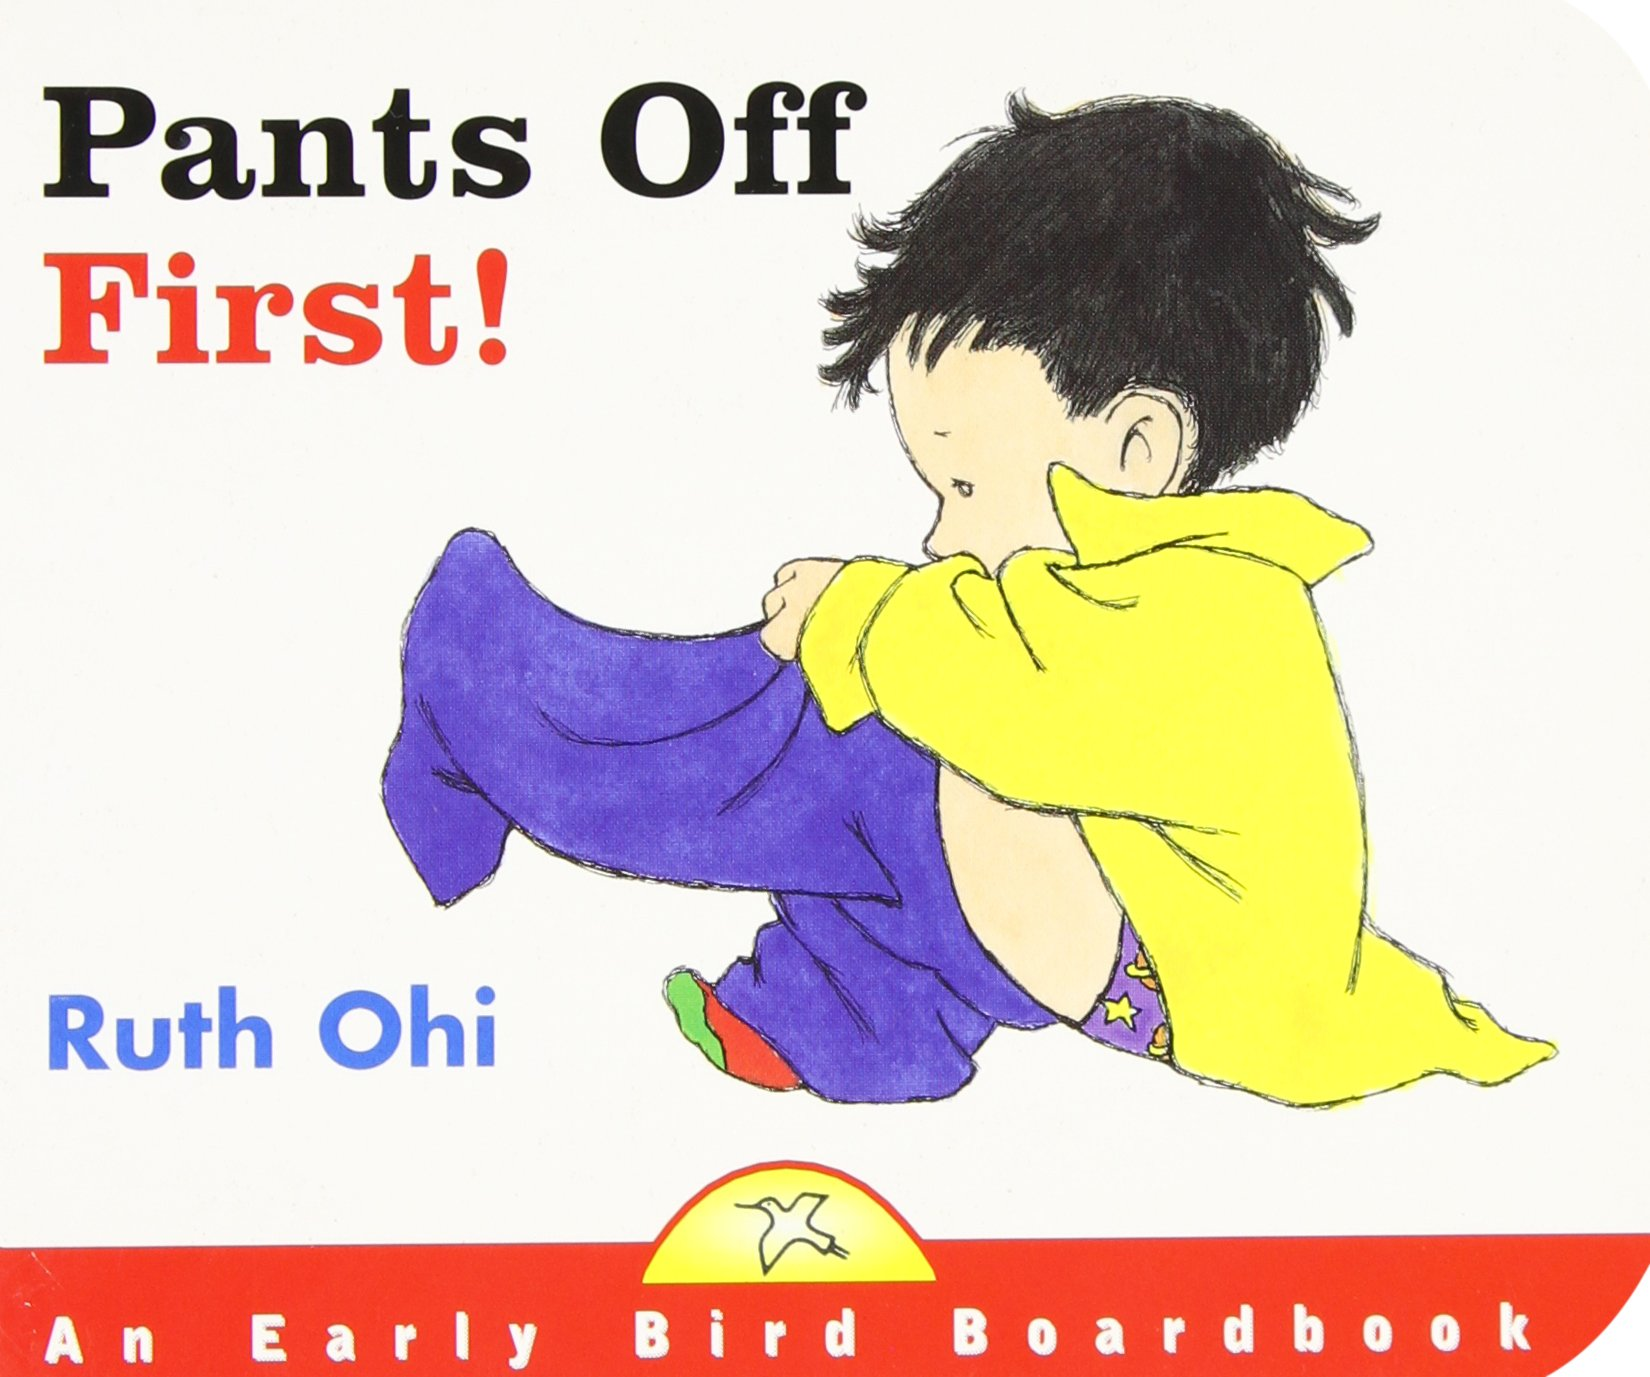 Download Pants Off First (An Early Bird Board Book) pdf epub